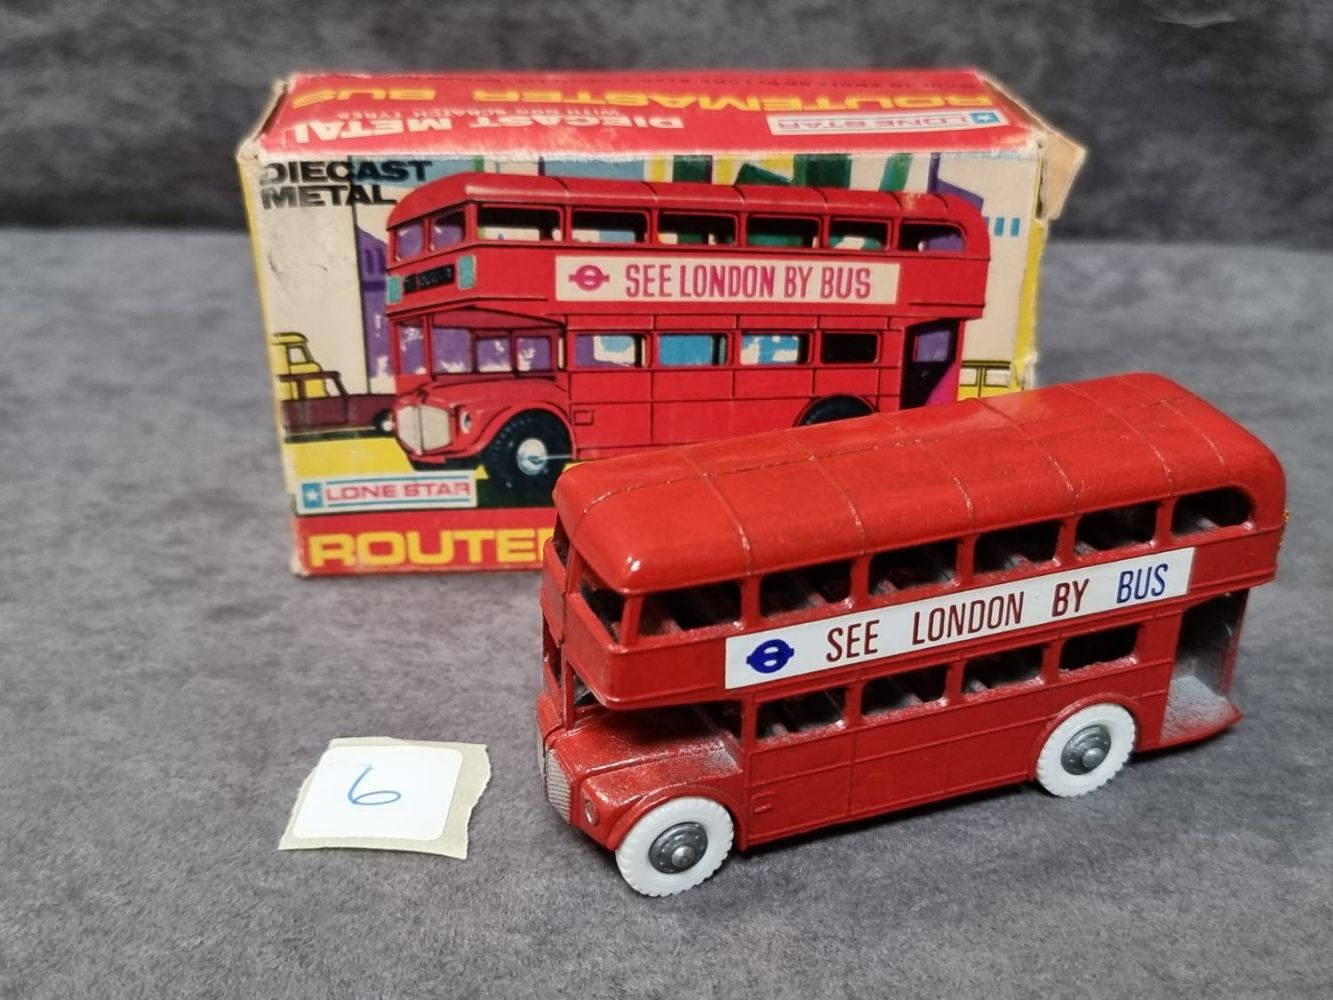 Diecast Model Auction Vintage Toys Prestige Marques Dinky, Matchbox, Solido, Spot-On and Lots More